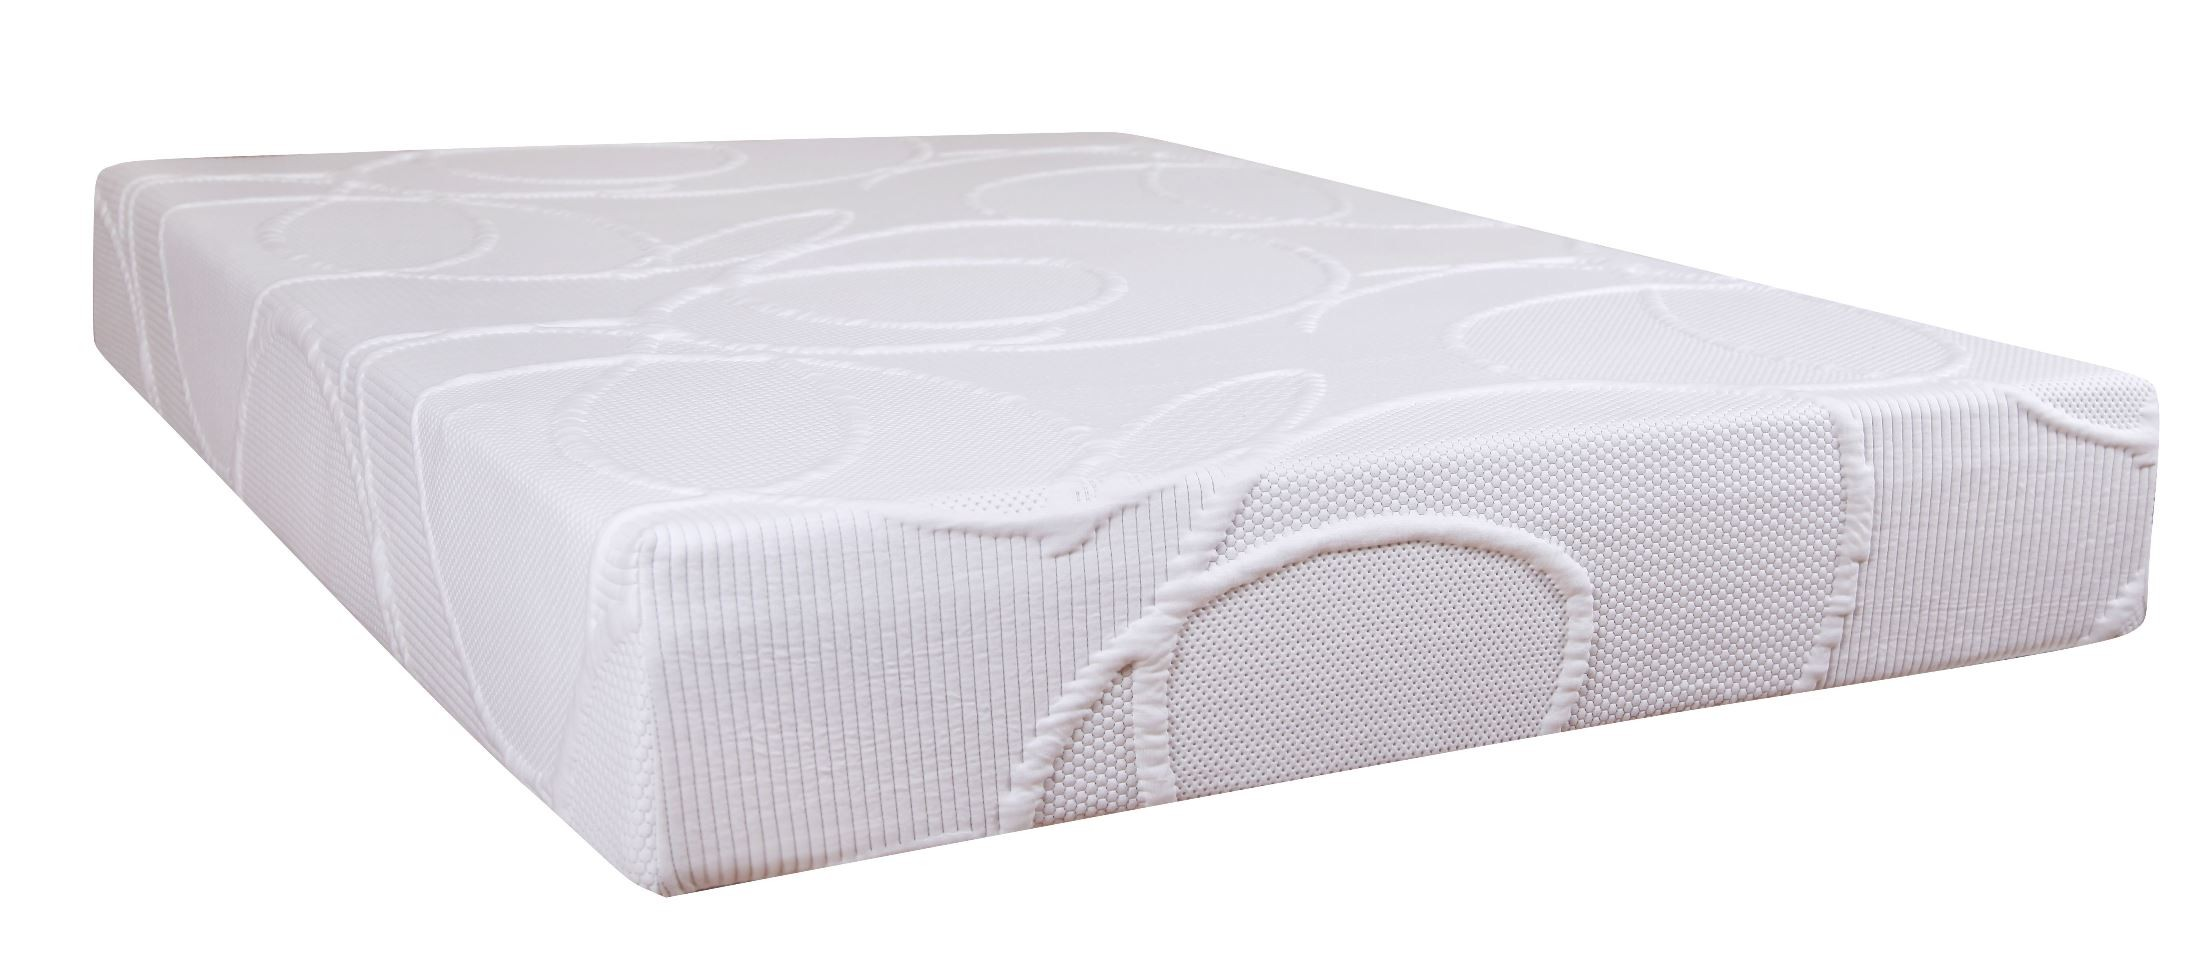 Polaris 10 Memory Foam King Size Mattress From Klaussner Polariskkmat Coleman Furniture